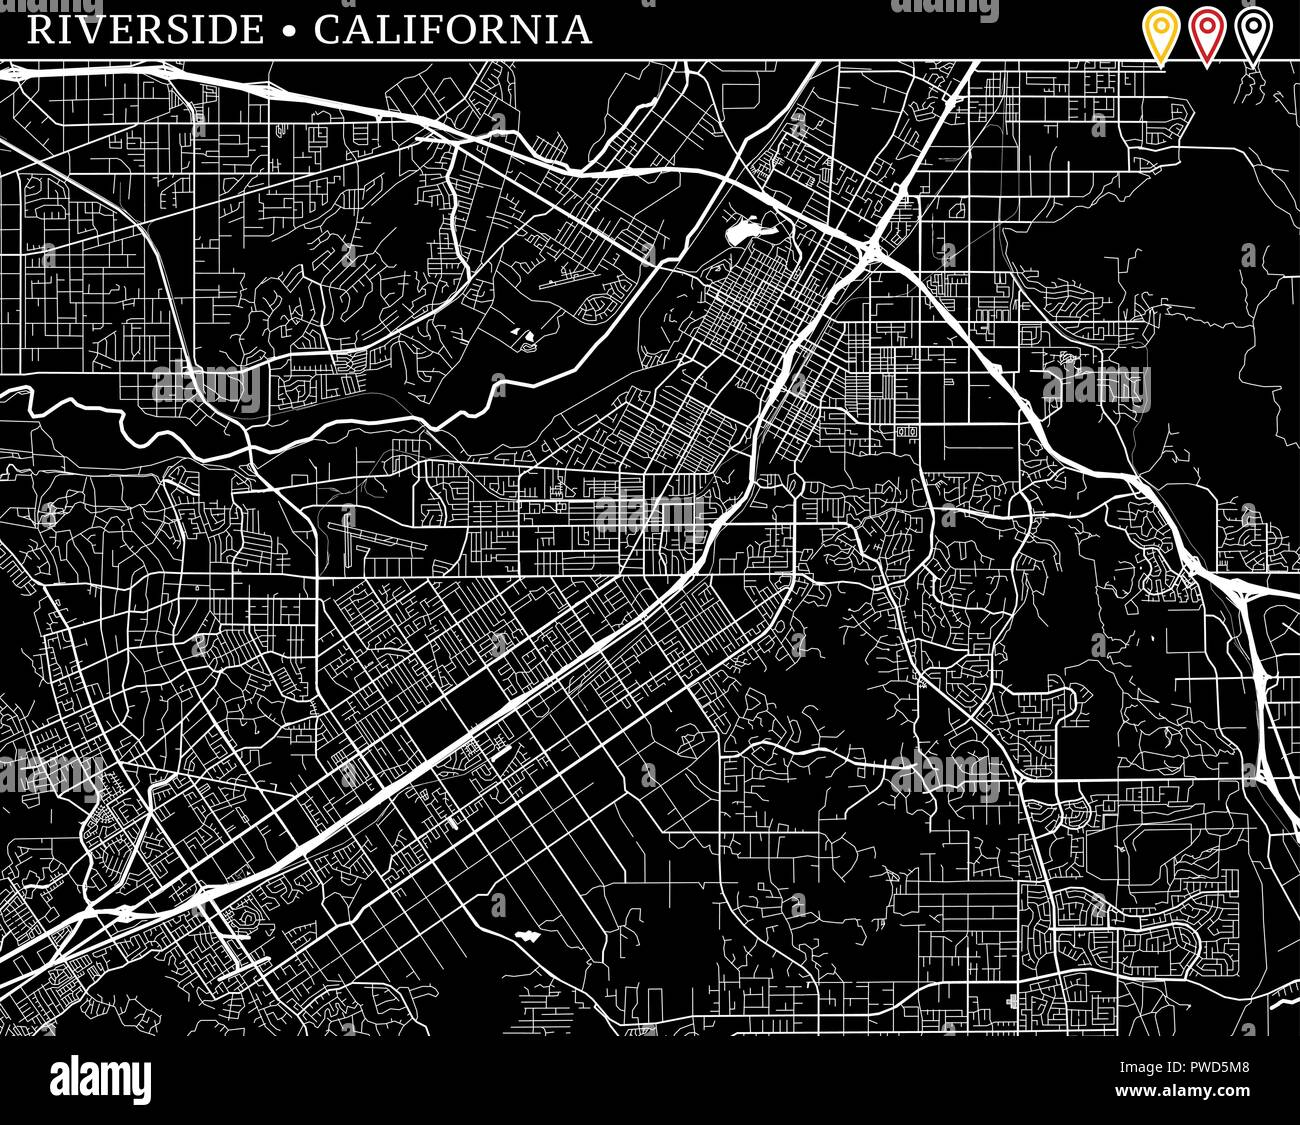 Simple map of Riverside, California, USA. Black and white ...